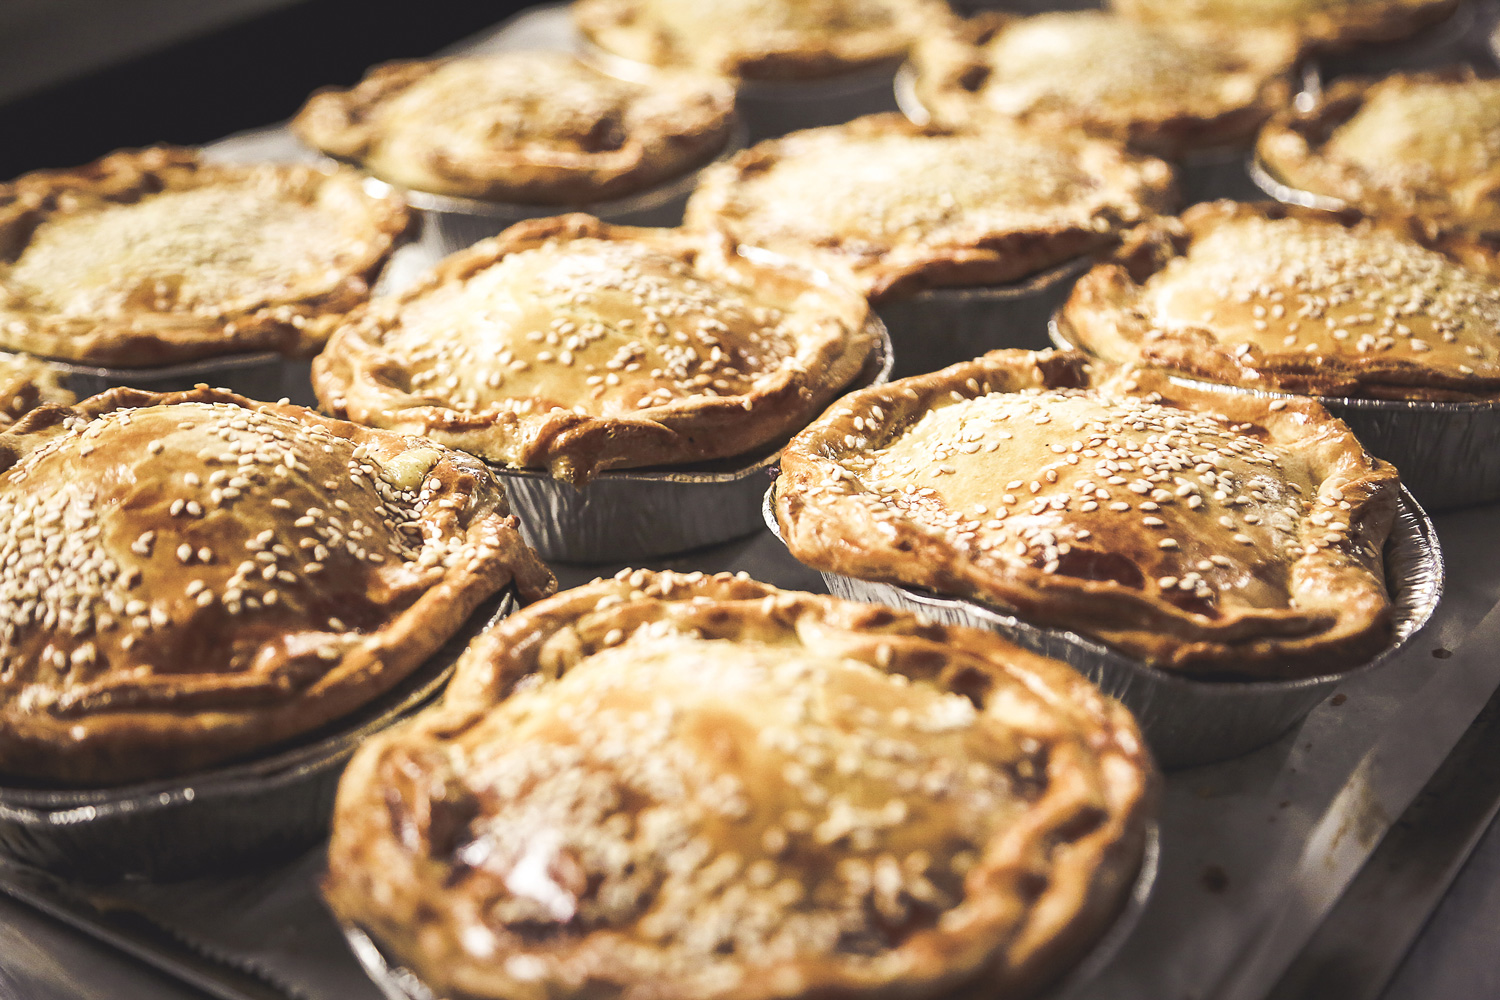 Fresh Pieman Pies out of the Oven